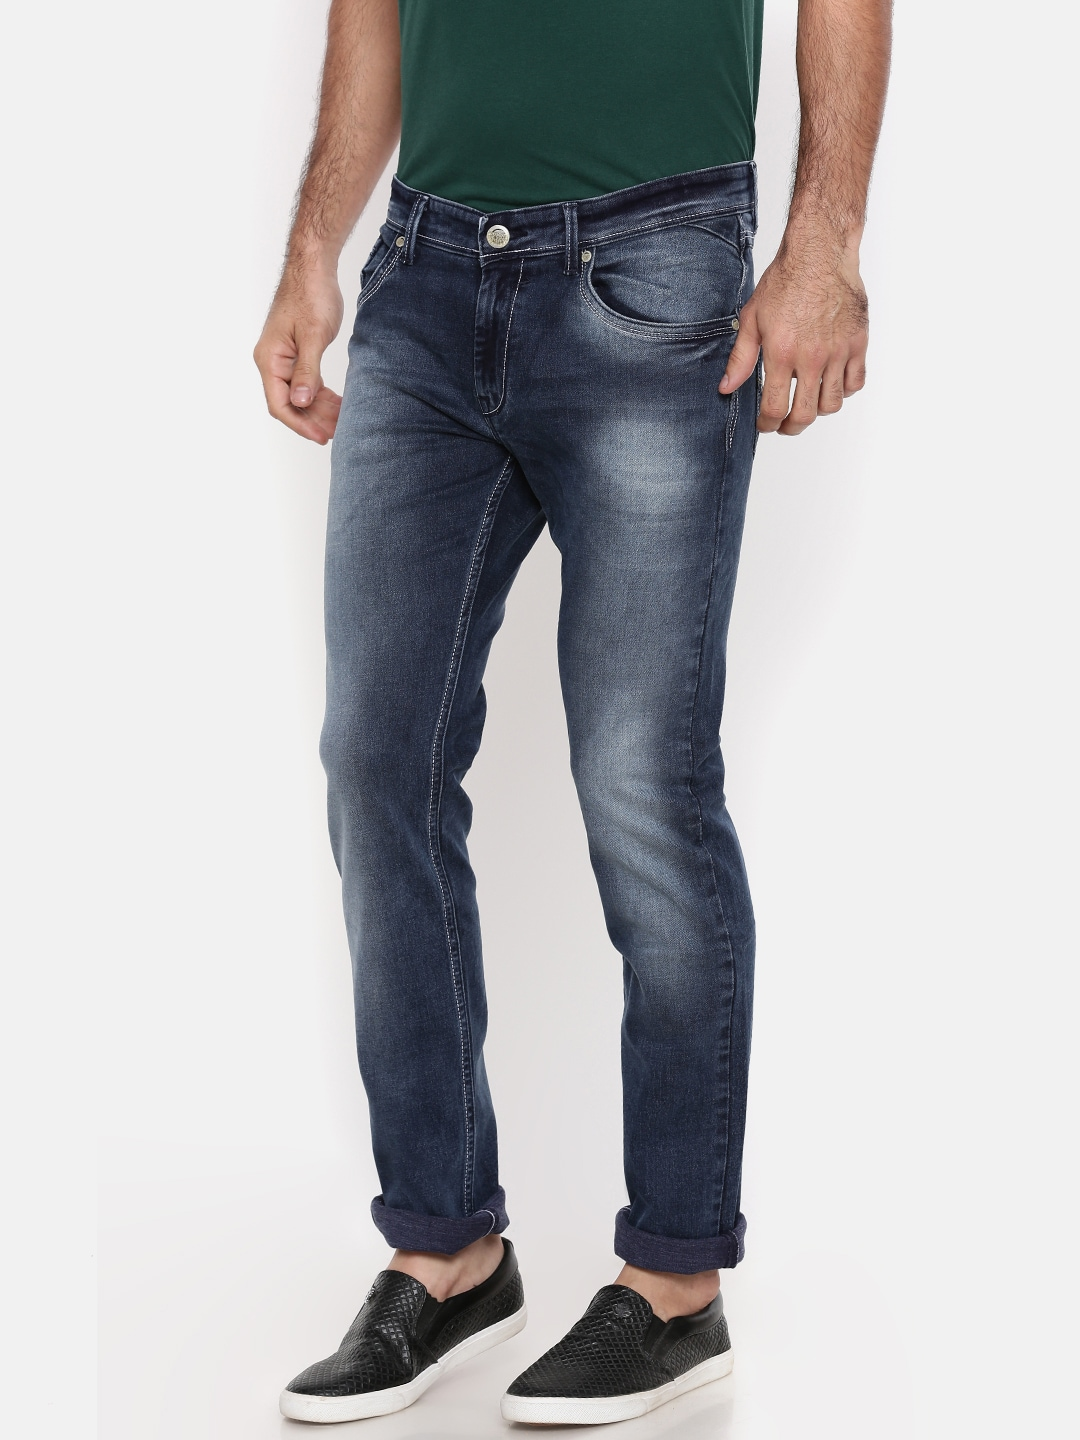 Oxemberg Men Blue Slim Fit Mid-Rise Clean Look Stretchable Jeans